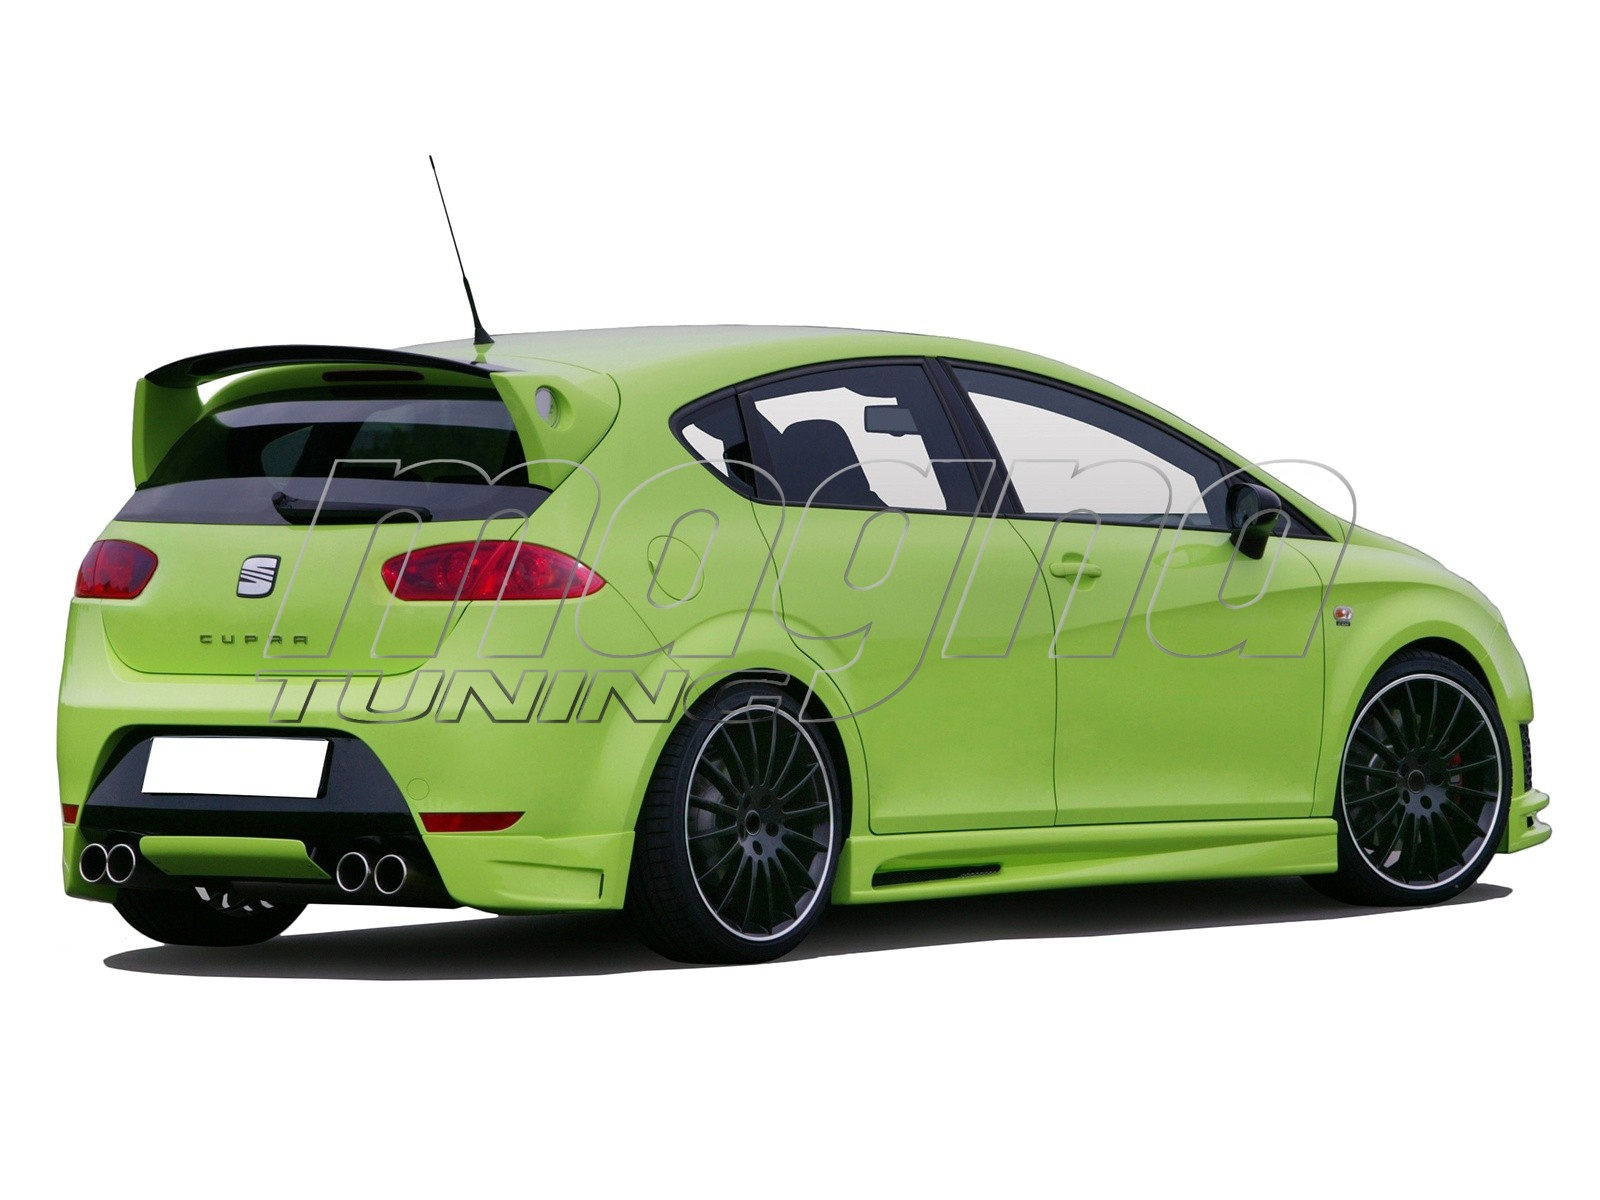 seat leon 1p facelift cupra fr e2 body kit. Black Bedroom Furniture Sets. Home Design Ideas